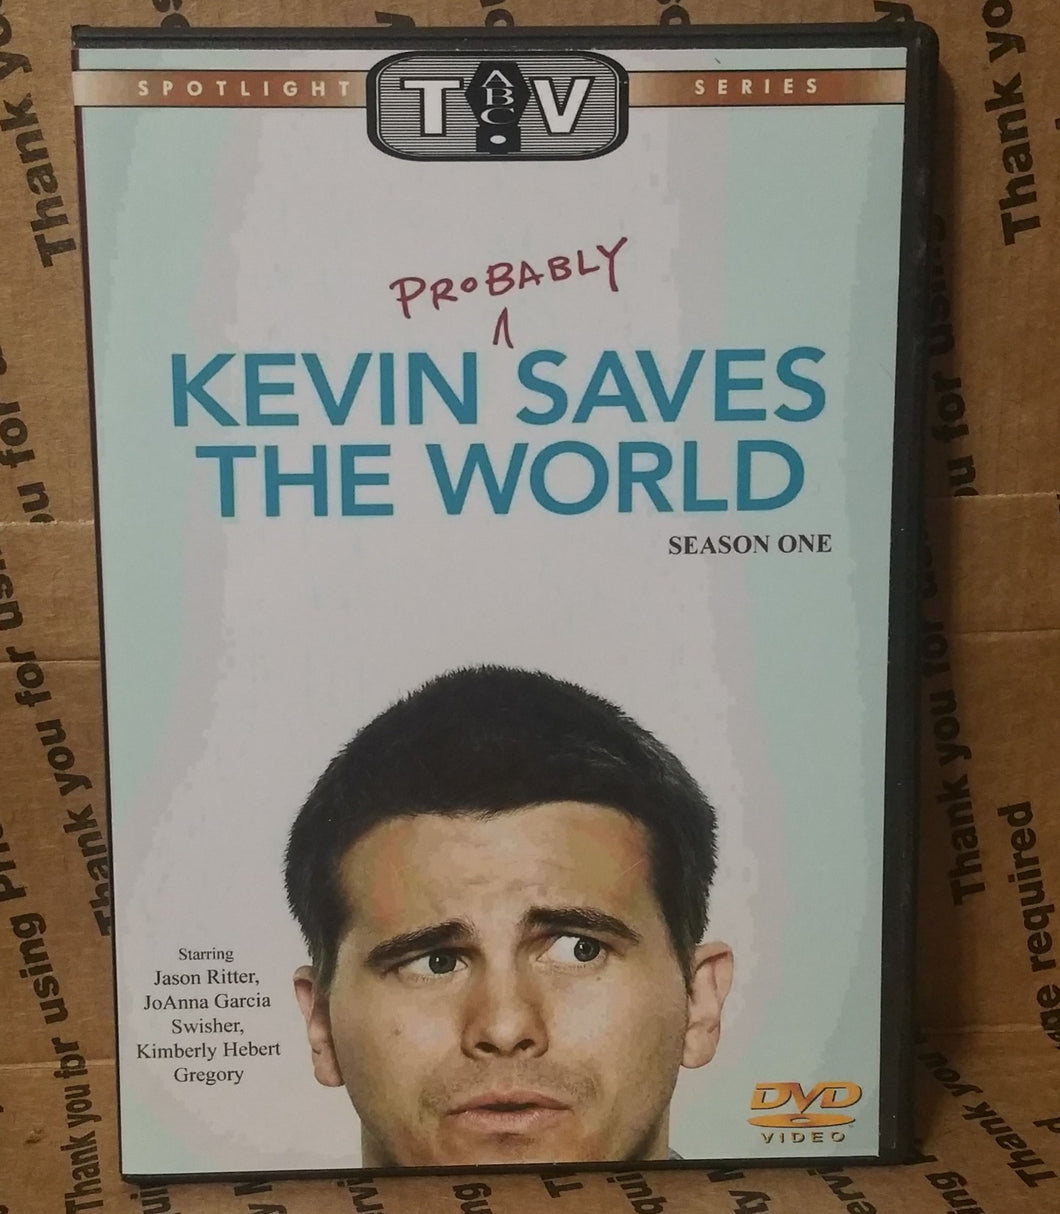 Kevin (Probably) Saves the World 2017 THE COMPLETE TV SERIES ON DVD Jason Ritter JoAnna Garcia